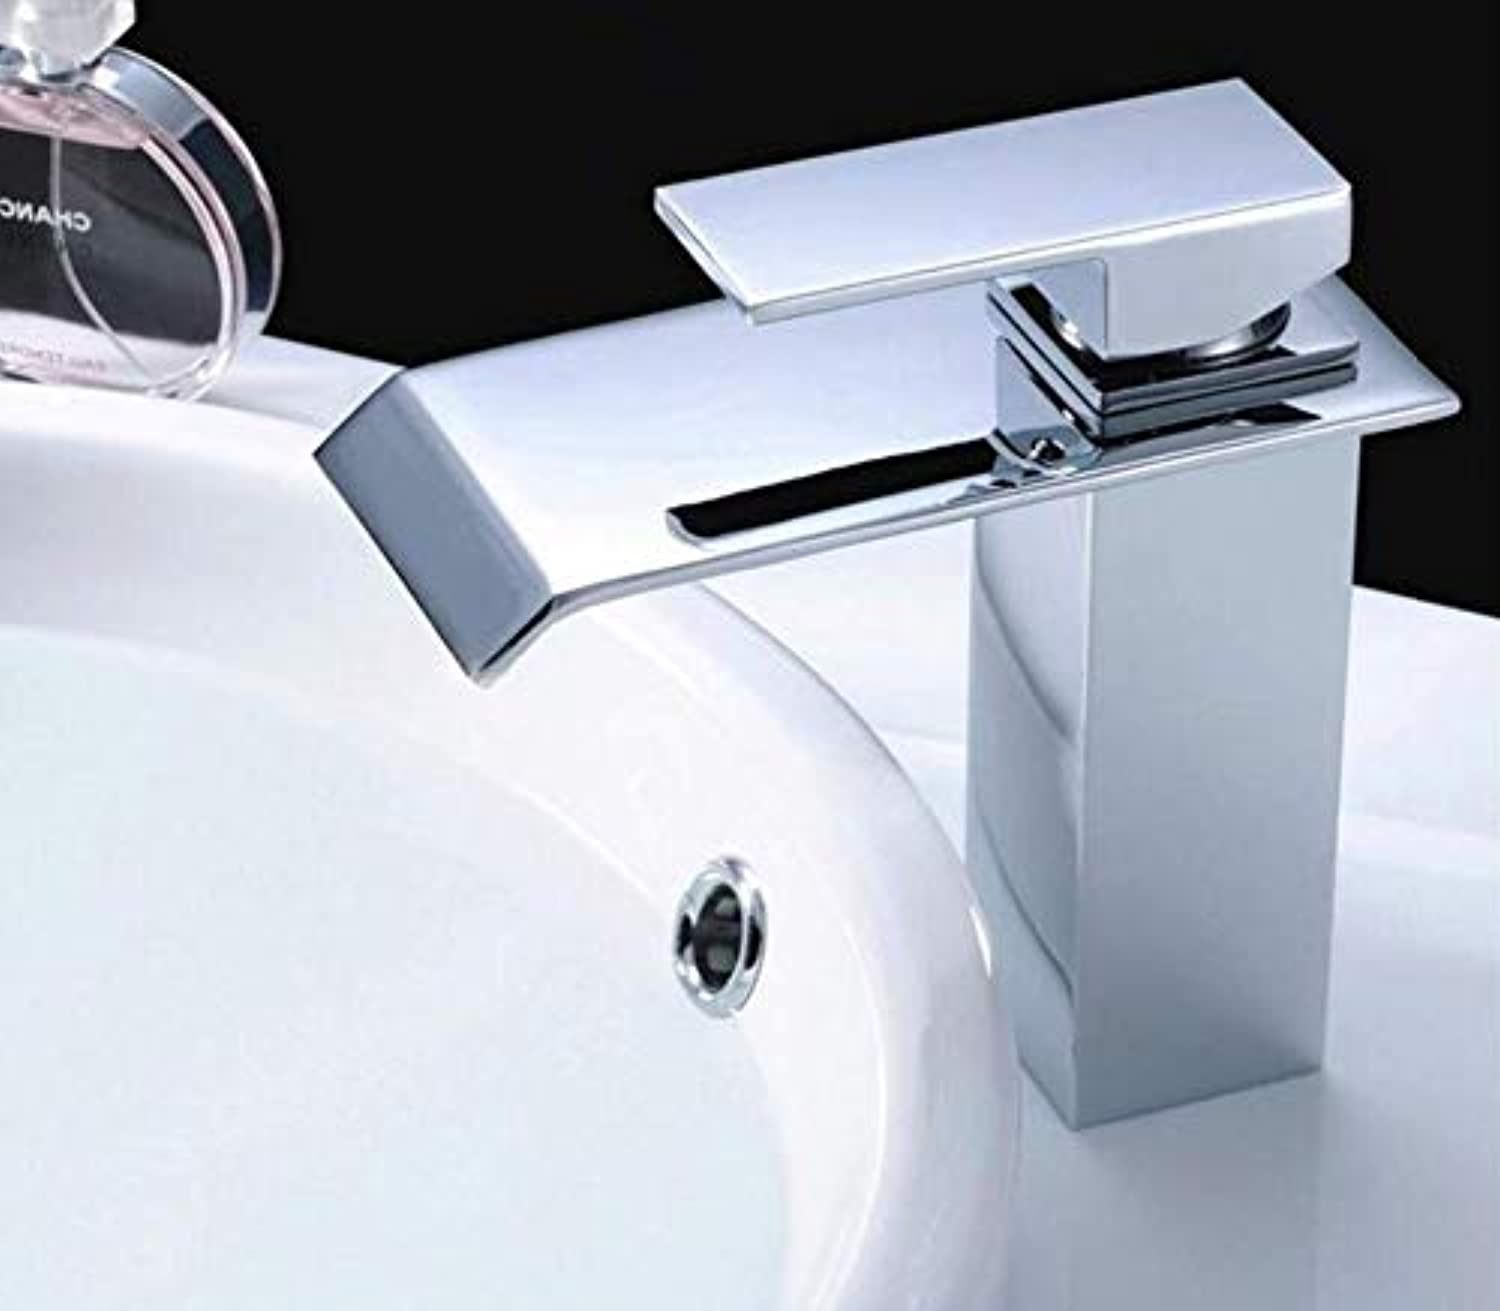 Brass Wall Faucet Chrome Brass Faucet Cold Hot Deck Mounted Square Vessel Faucet Sink Wash Basin Faucet